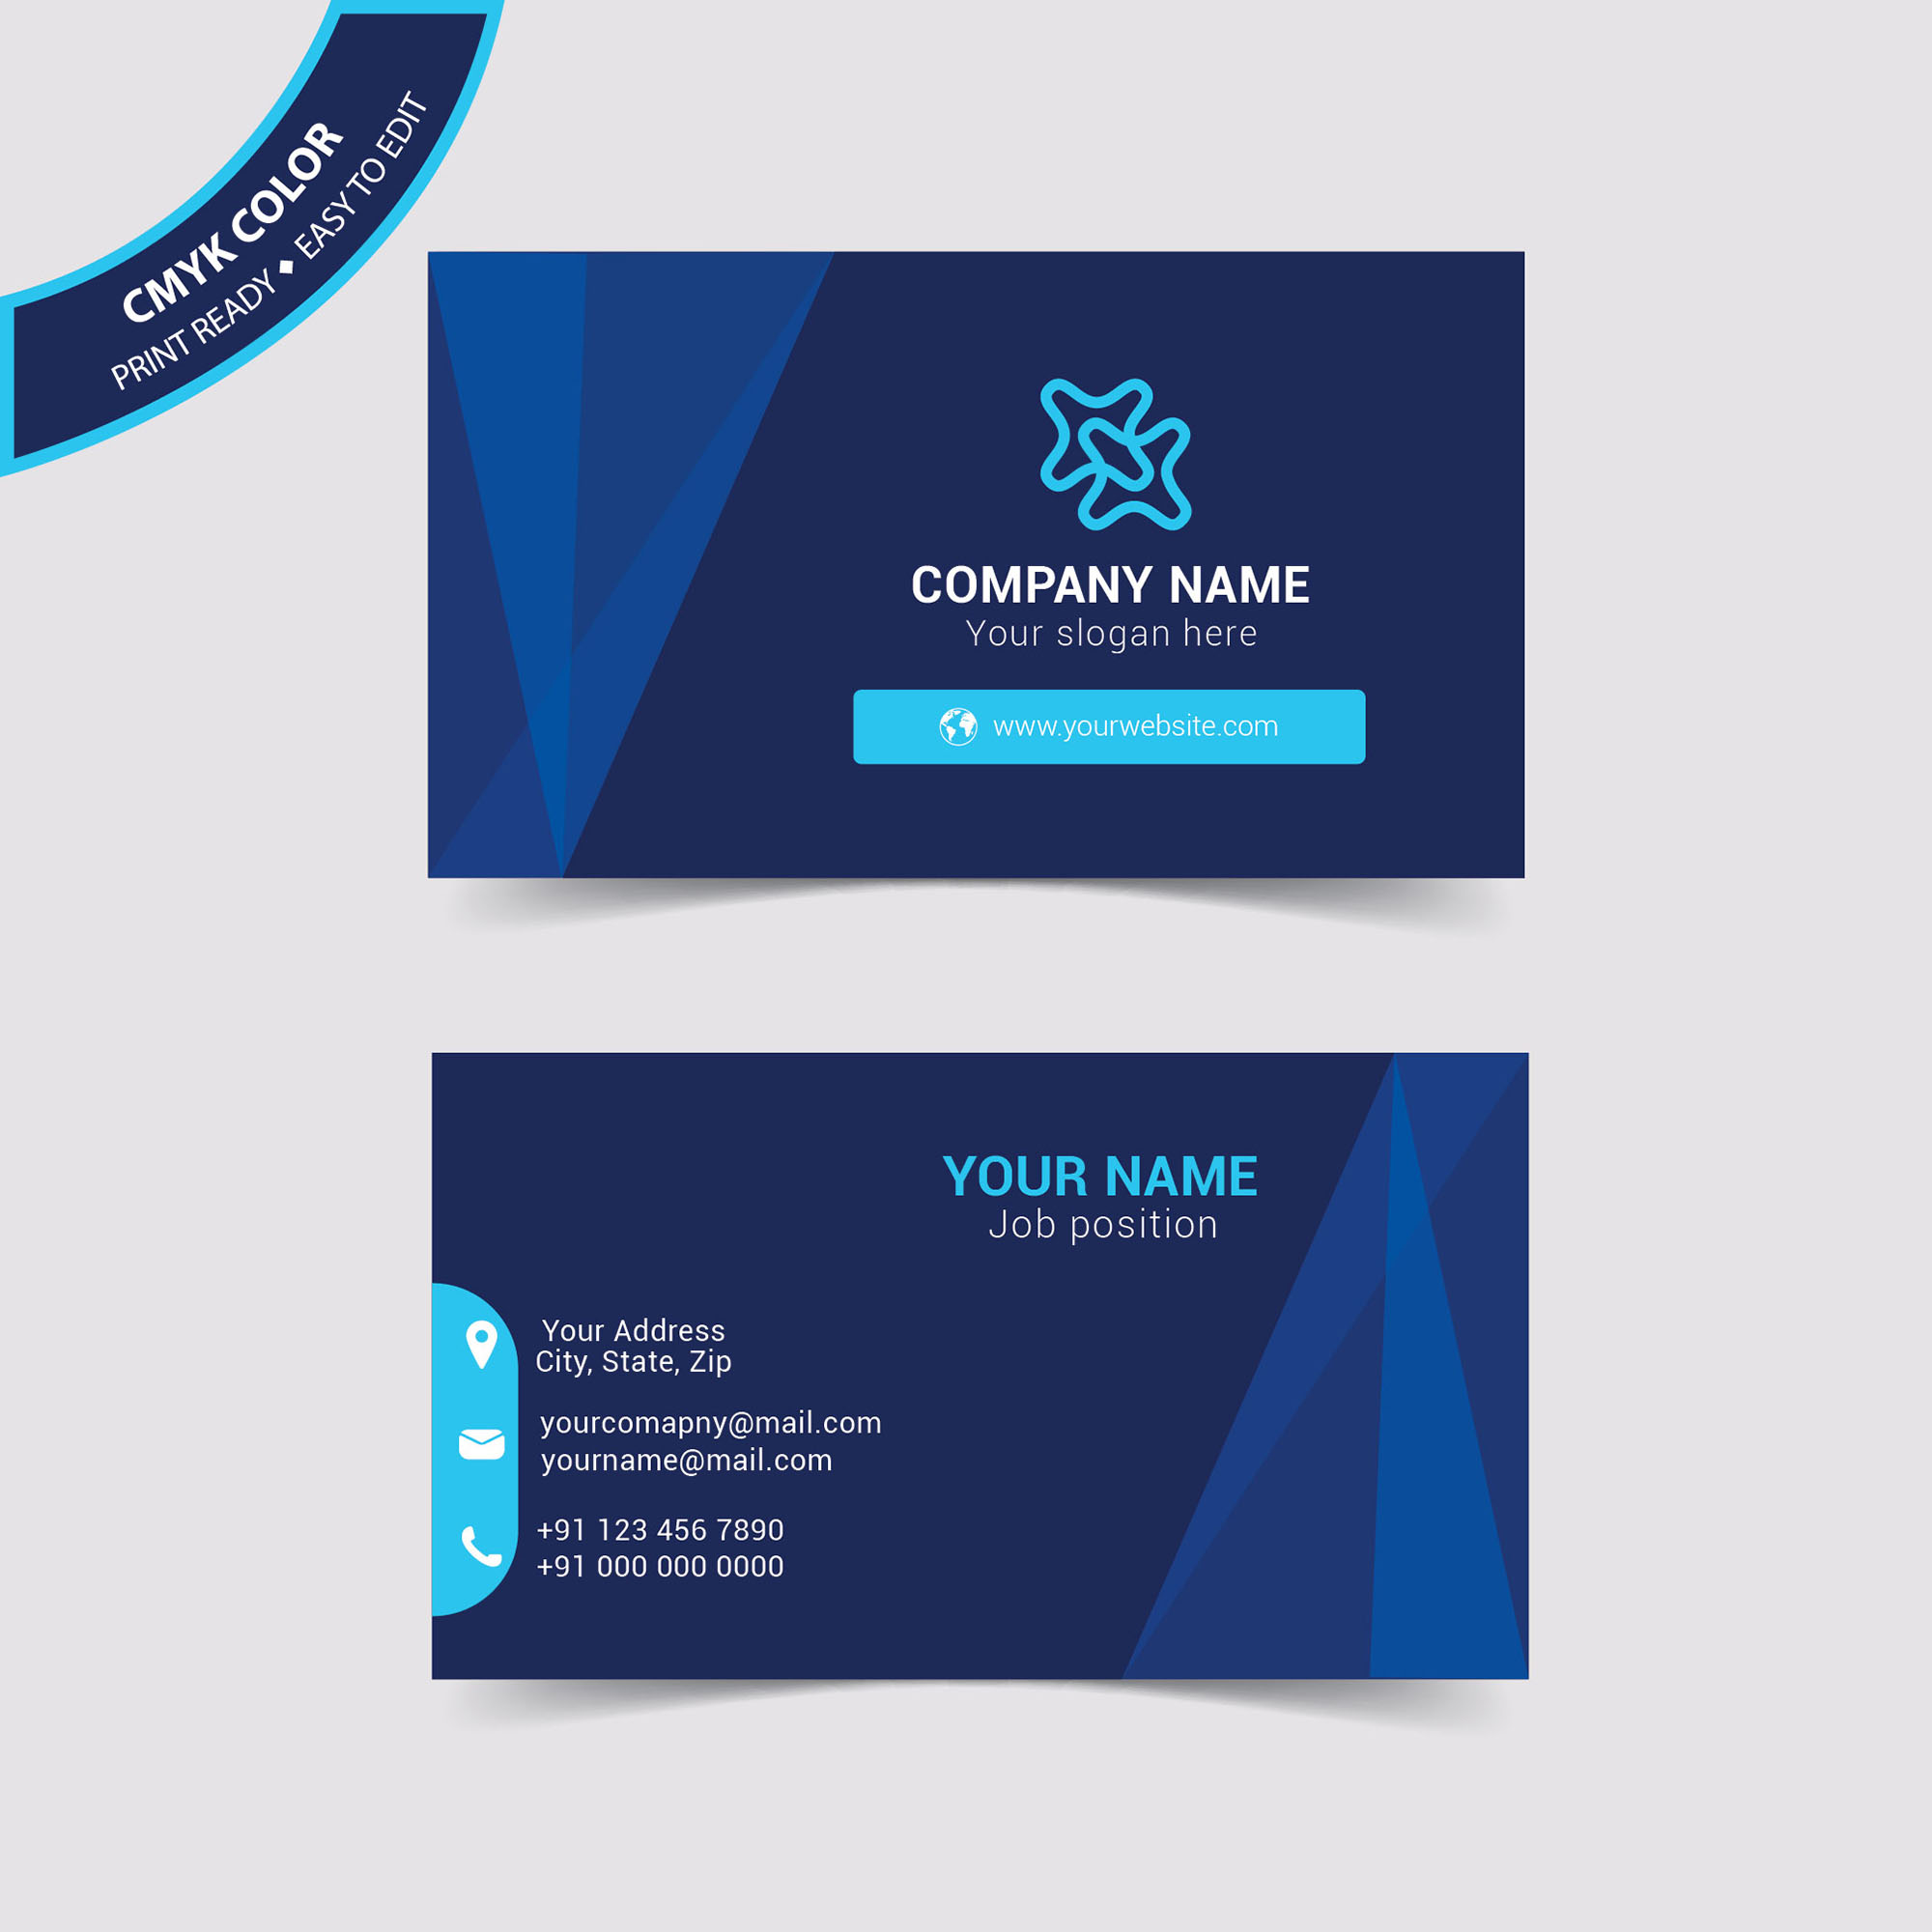 Blue creative business card design free download wisxi business card business cards business card design business card template design templates accmission Choice Image